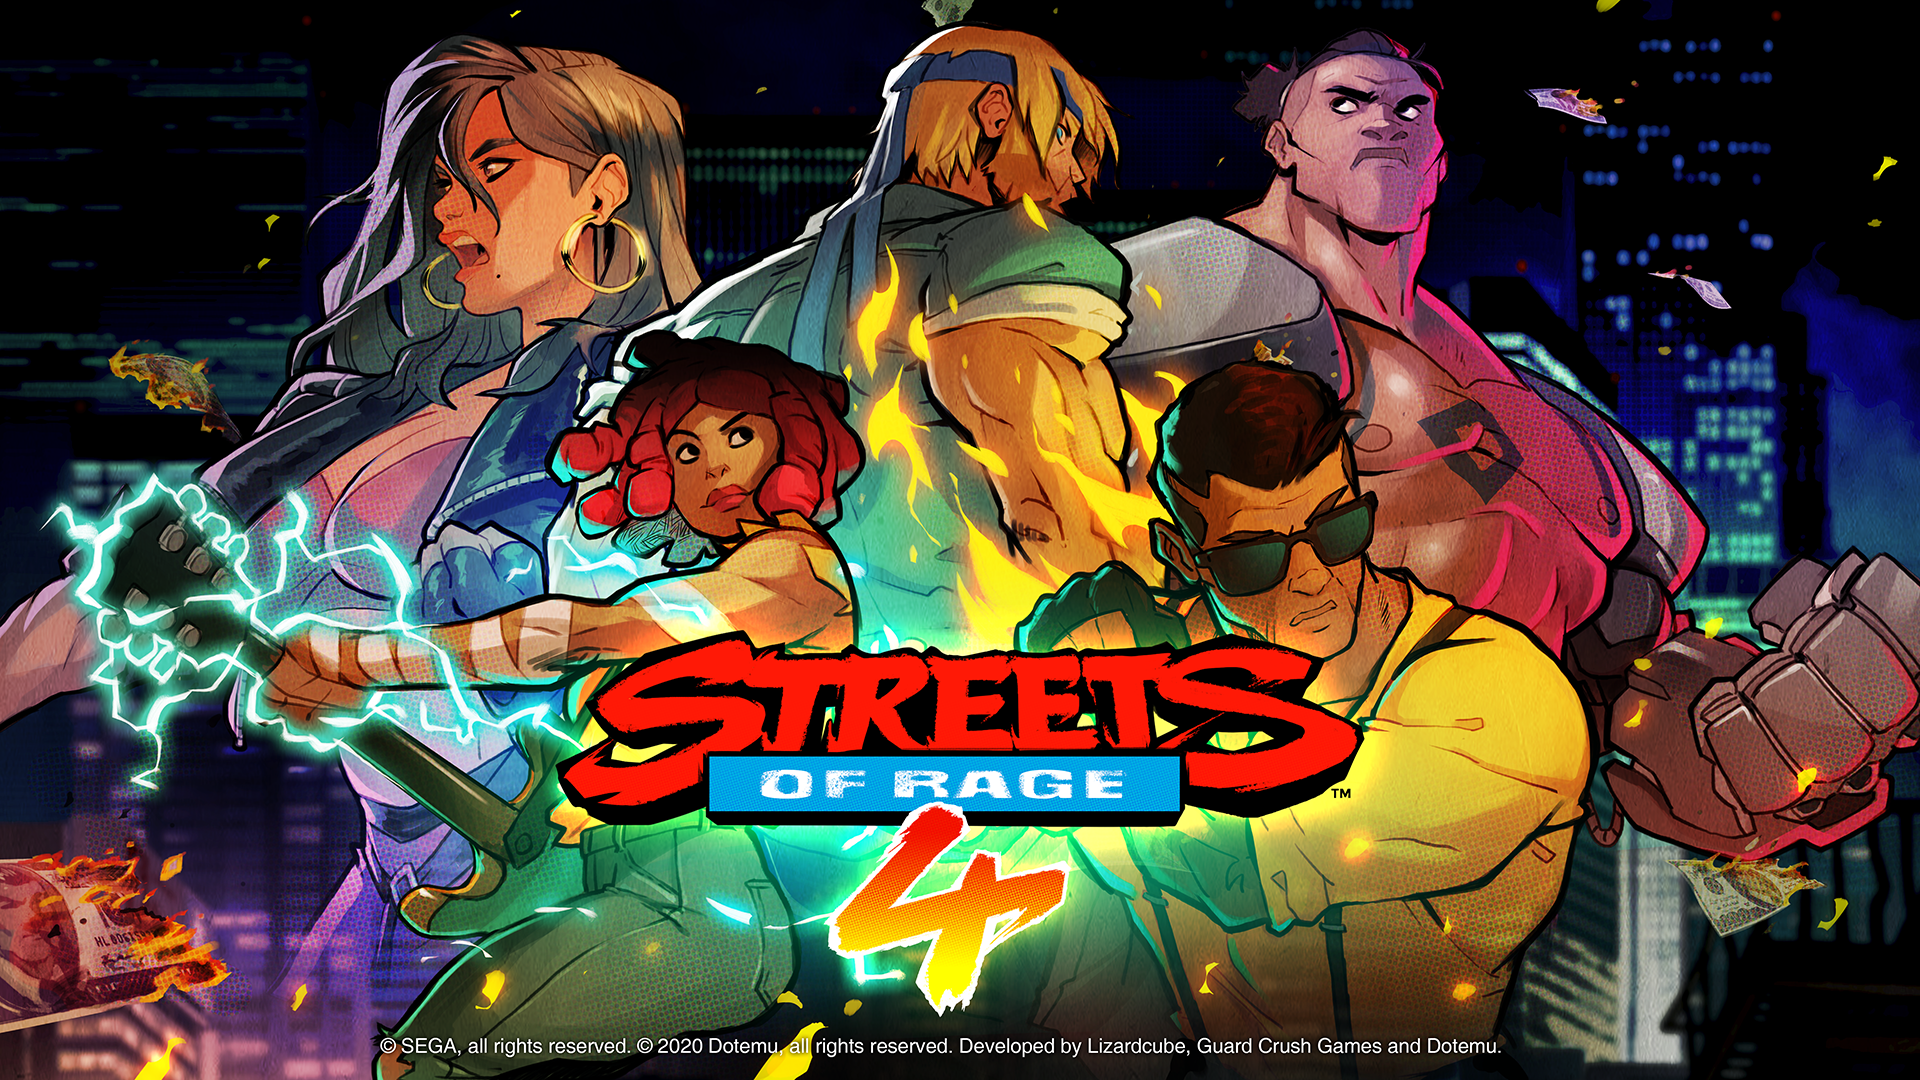 Streets Of Rage 4 Hands On Preview And Interview From Pax East 2020